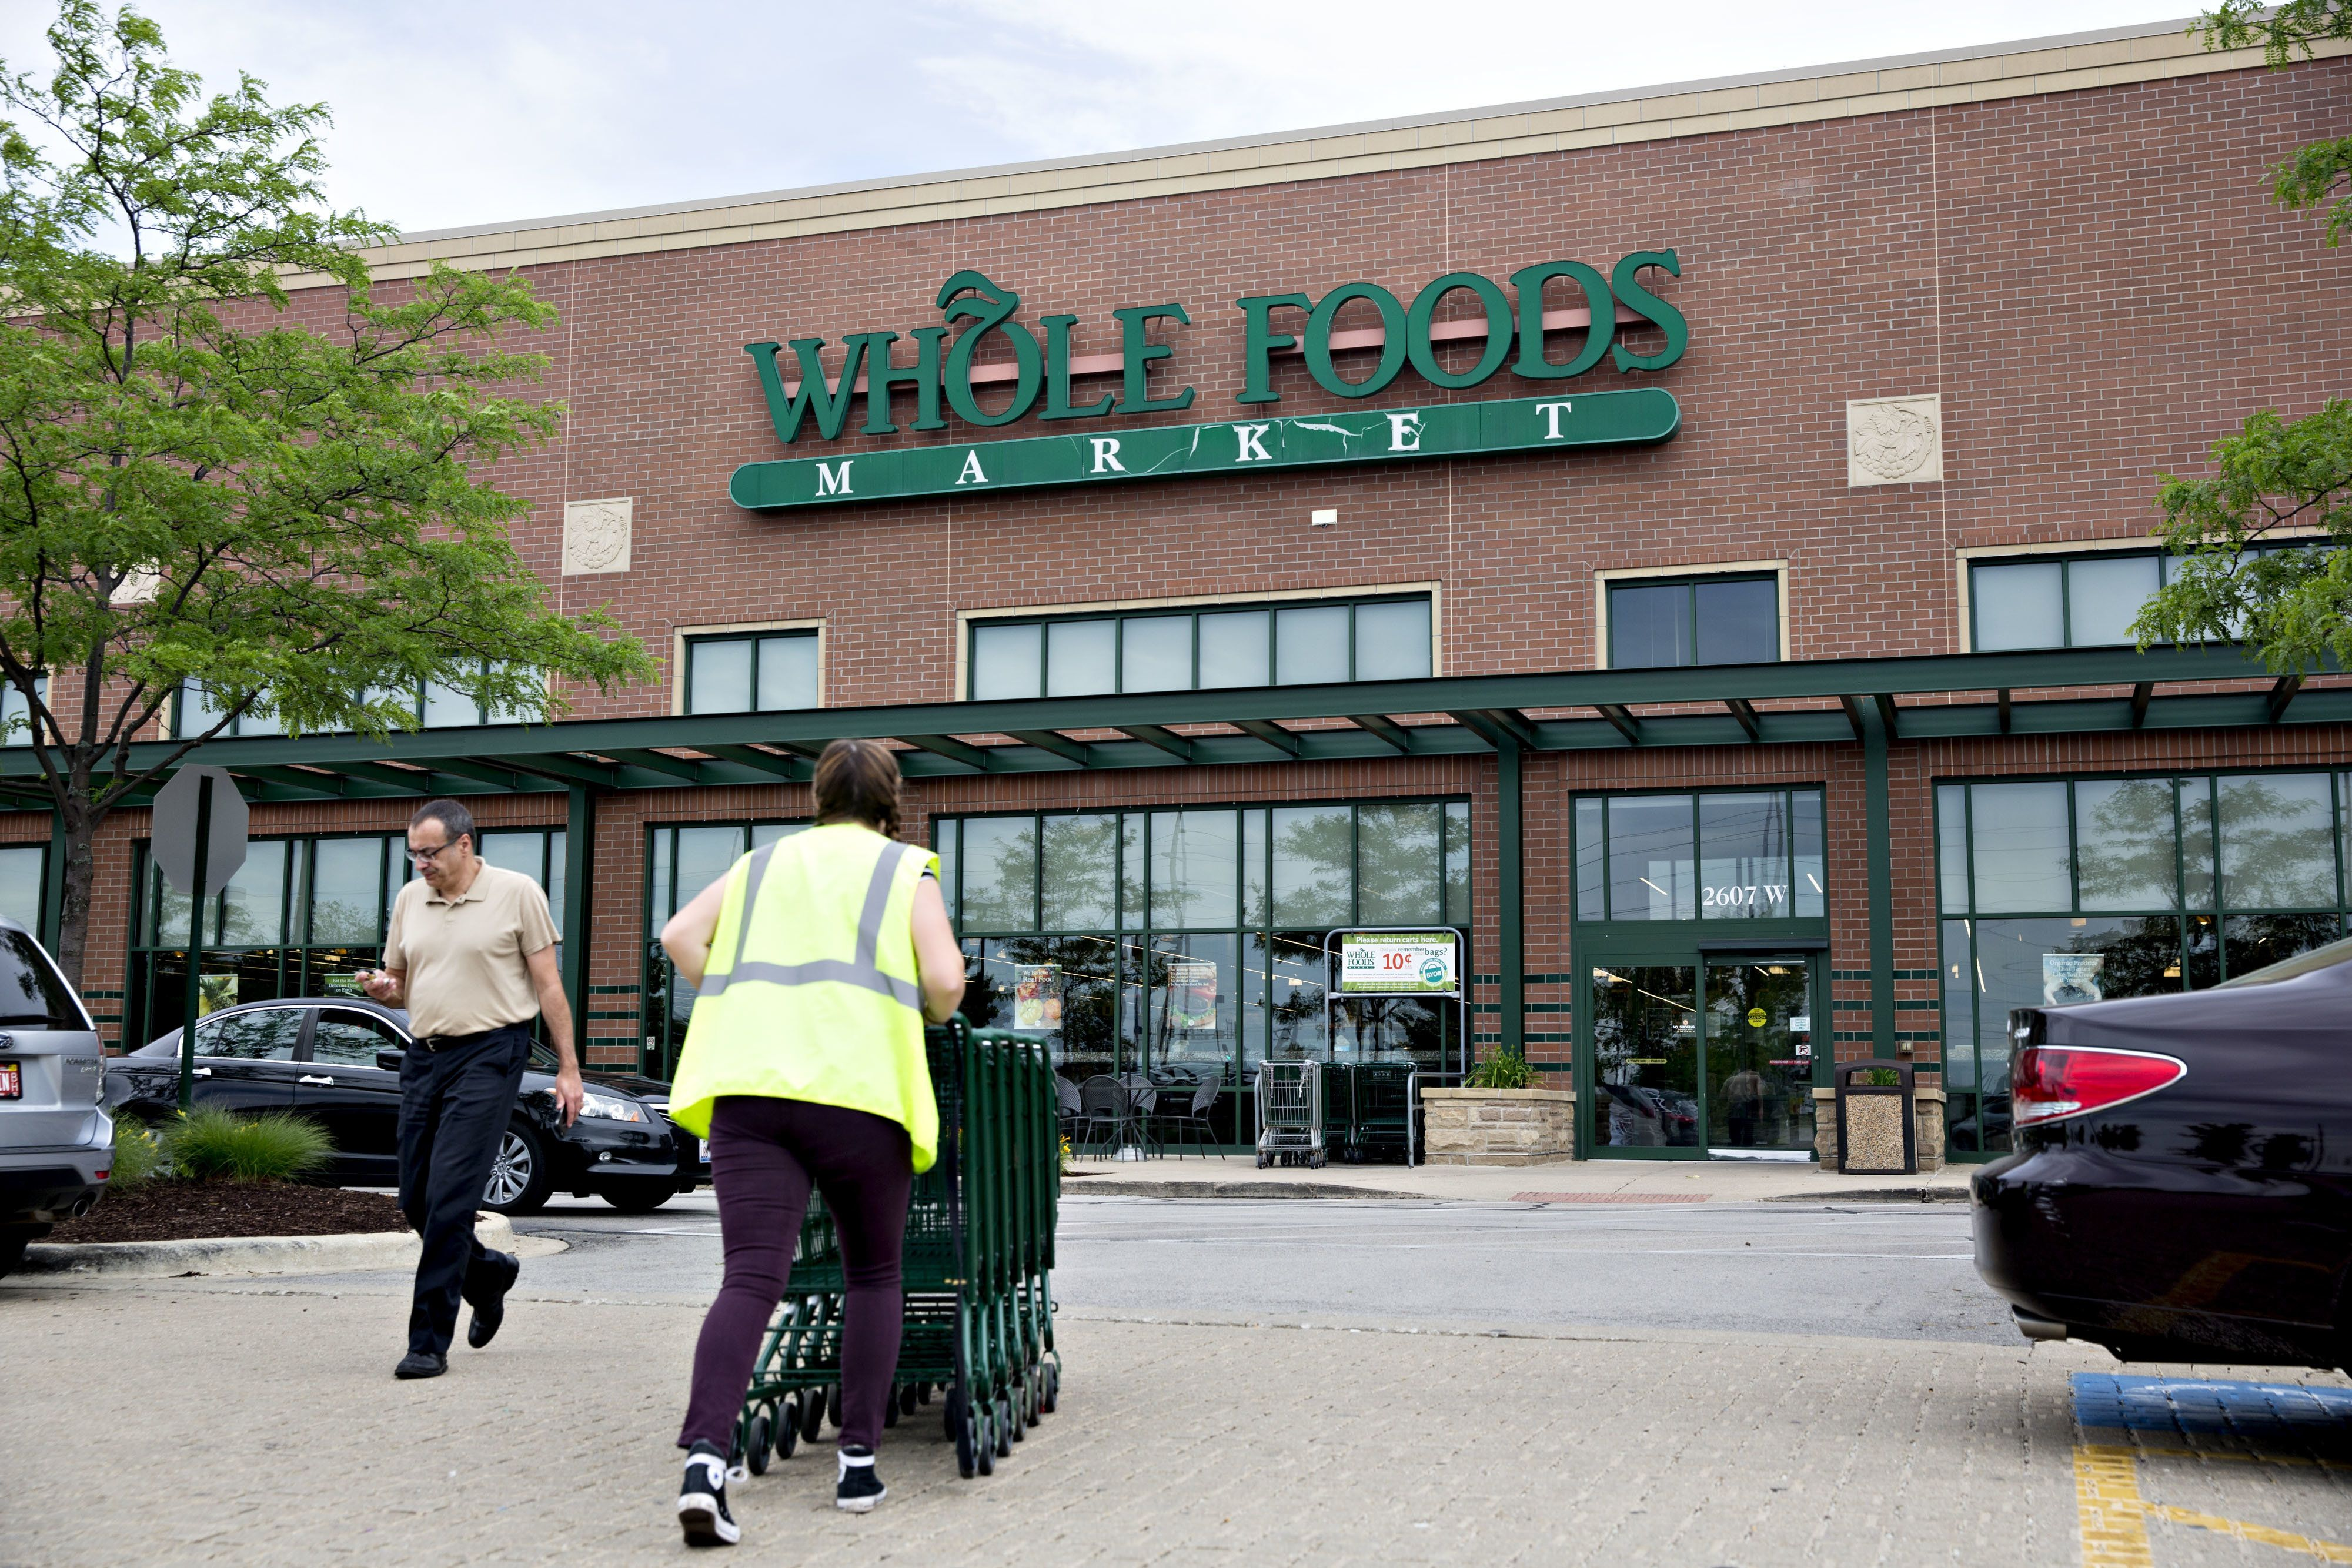 An employee pushes shopping carts outside a Whole Foods Market Inc. location in Naperville, Illinois, U.S., on Friday, June 16, 2017. Amazon.com Inc. will acquire Whole Foods Market Inc. for $13.7 billion, a bombshell of a deal that catapults the e-commerce giant into hundreds of physical stores and fulfills a long-held goal of selling more groceries. Photographer: Daniel Acker/Bloomberg via Getty Images